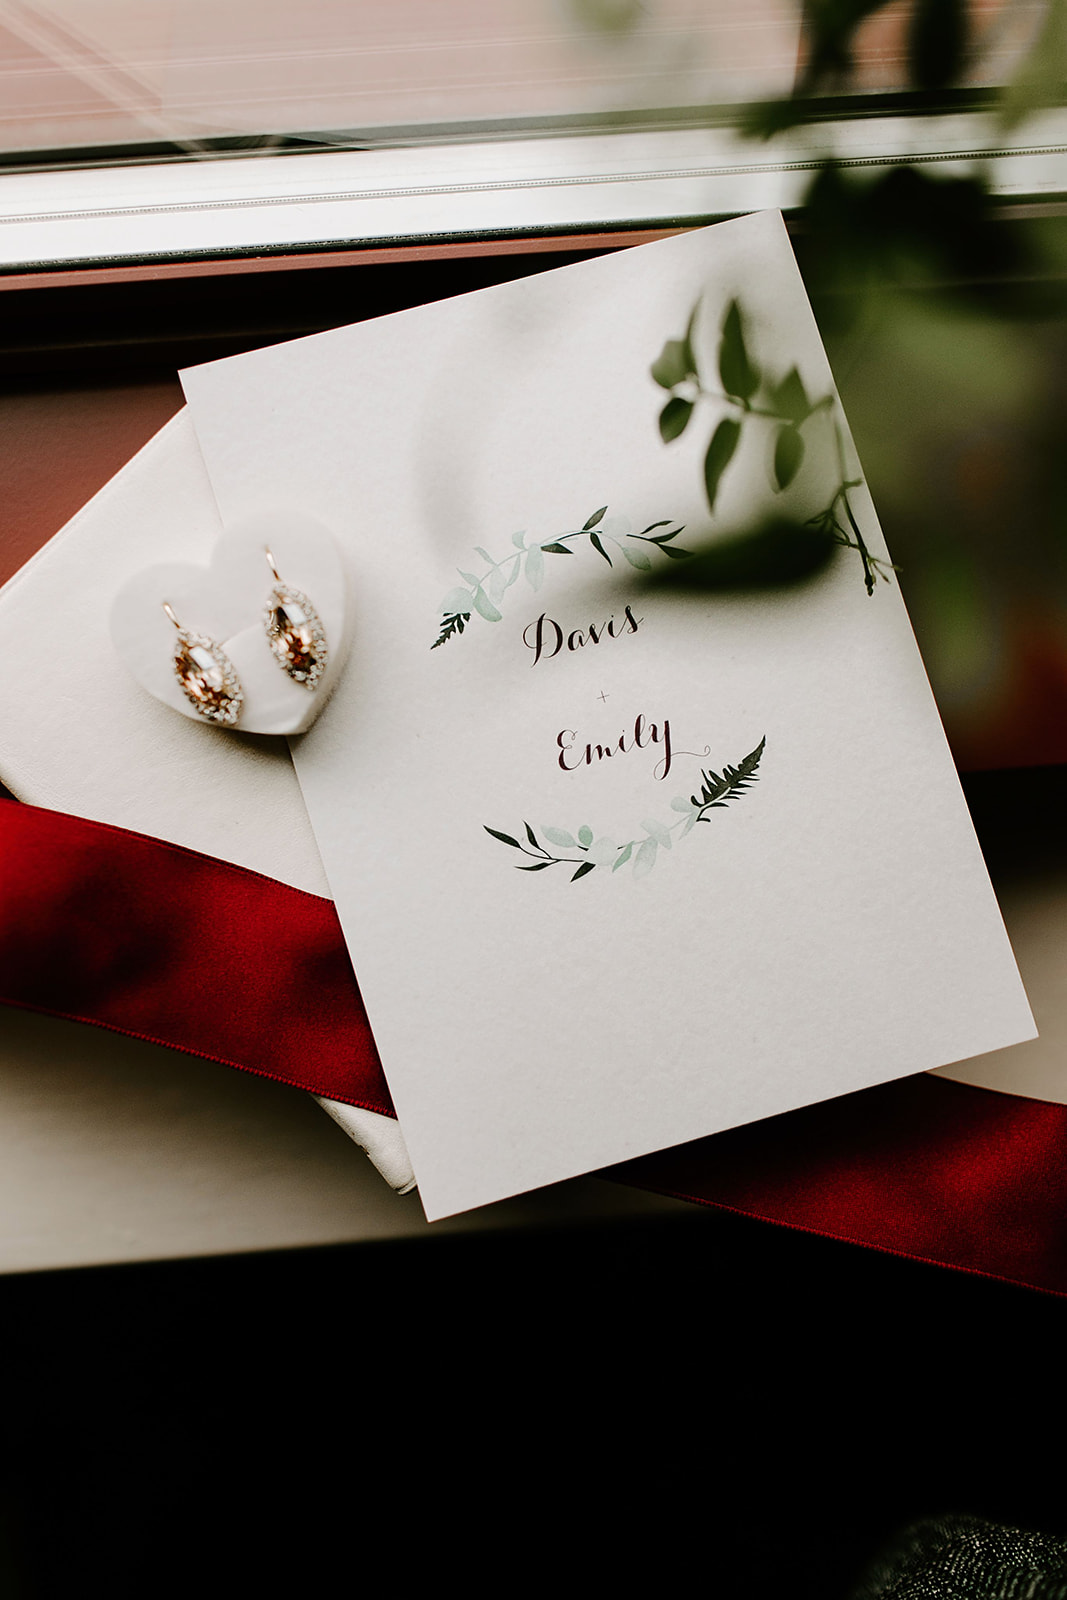 Emily and Davis_ Wedding at Vision Loft Indy in Indianapolis Indiana by Emily Elyse Wehner Photogrpahy LLC-21.jpg